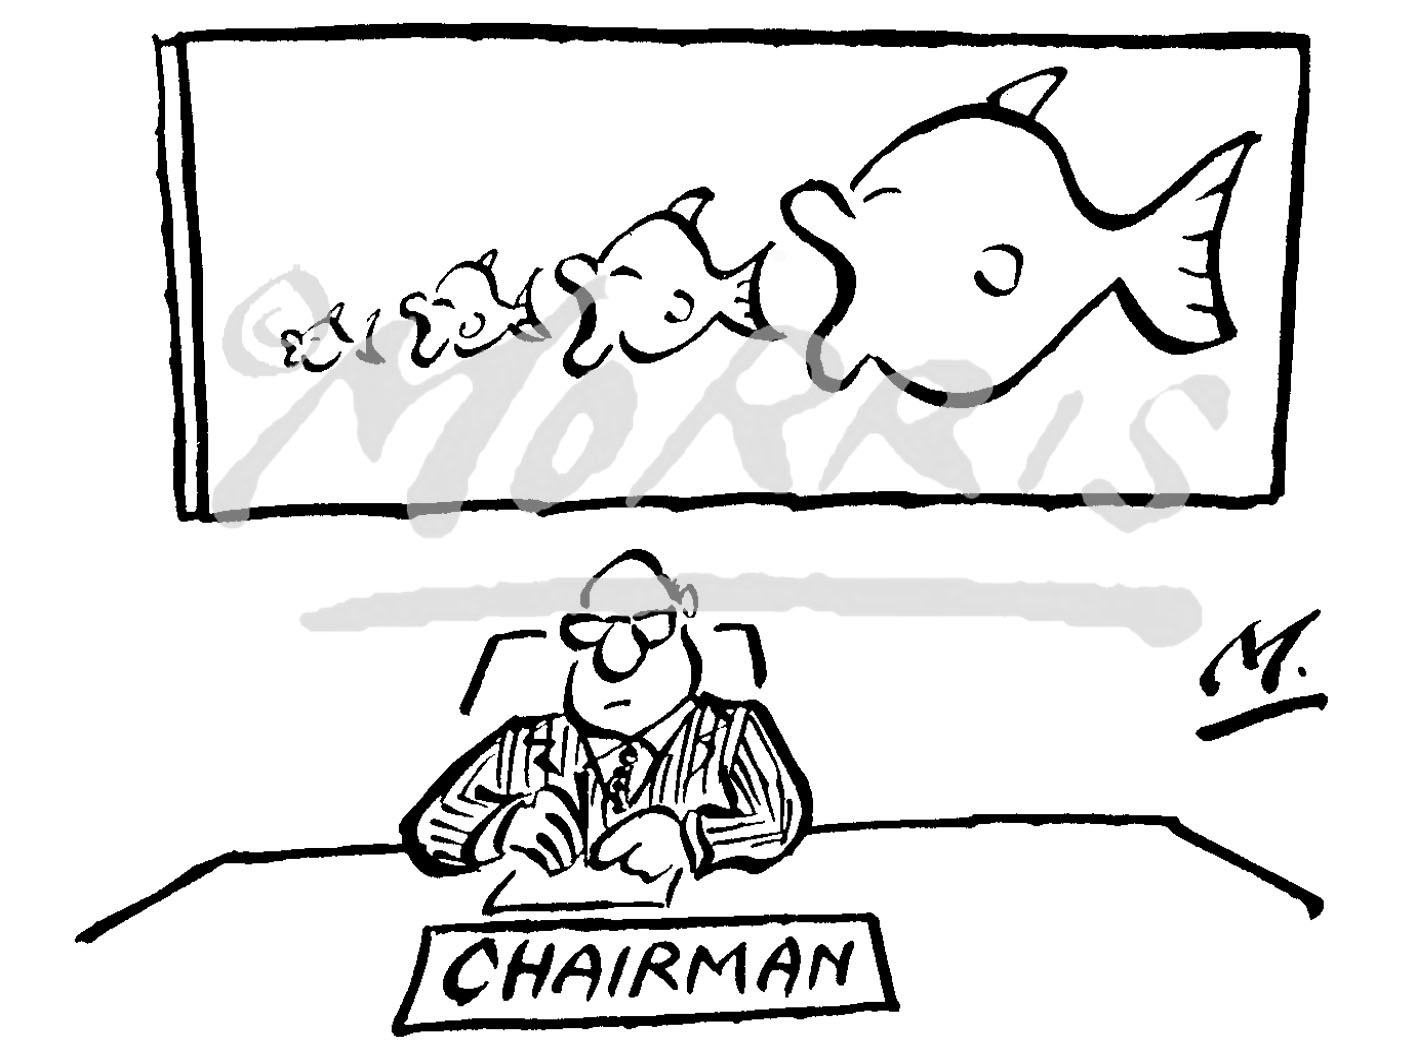 Chairman takeovers cartoon Ref: 1474bw